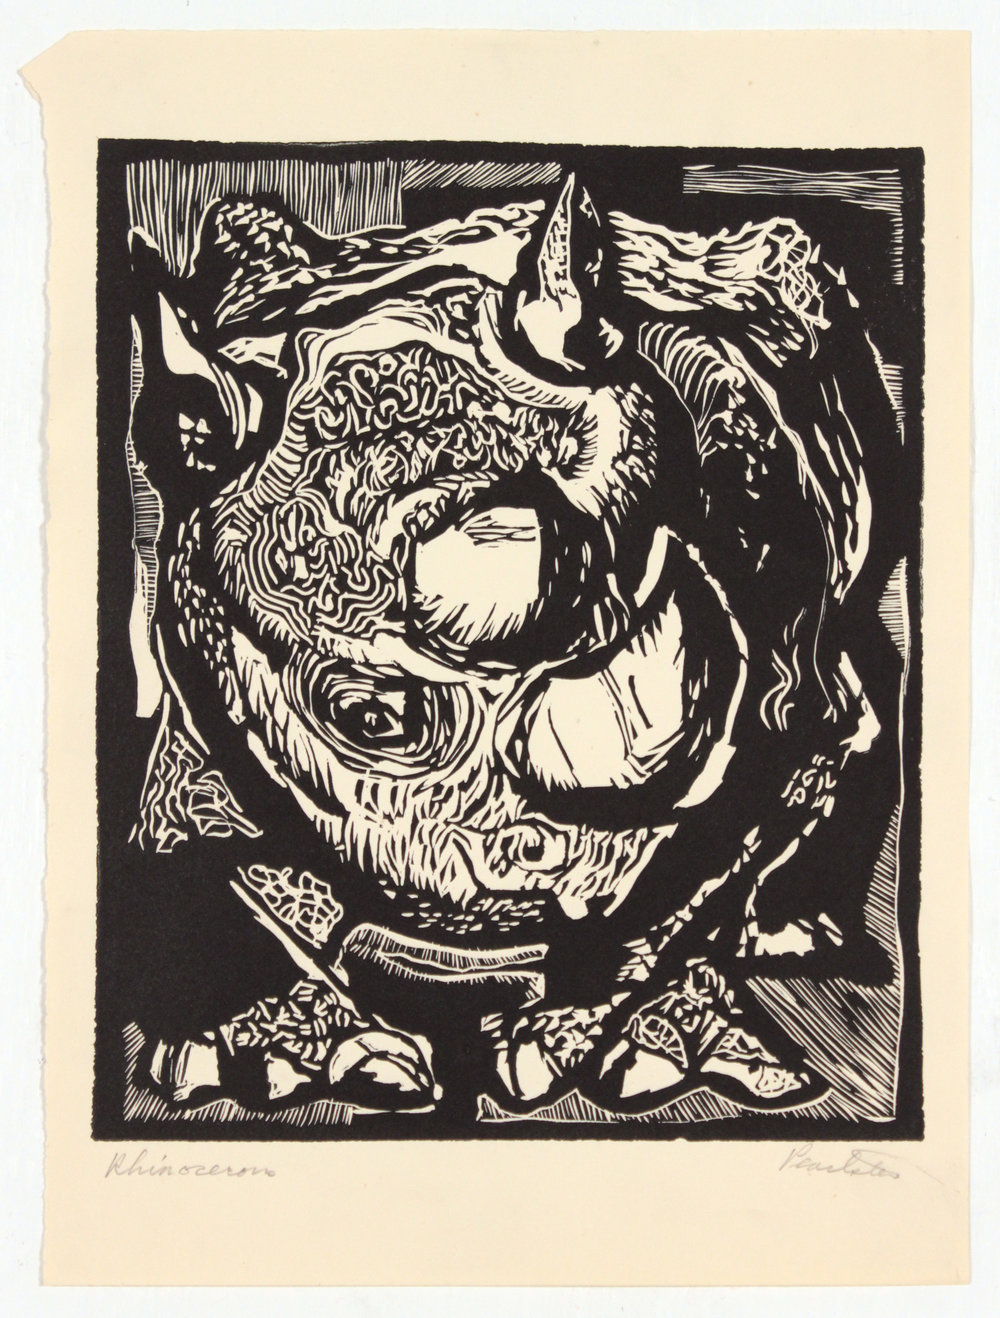 3. 1947-48 c, Collection of Early Prints Done at Carnegie Tech, Rhinoceros, Linoleum Cut, 11.25x8.3125, PPS 1312.JPG